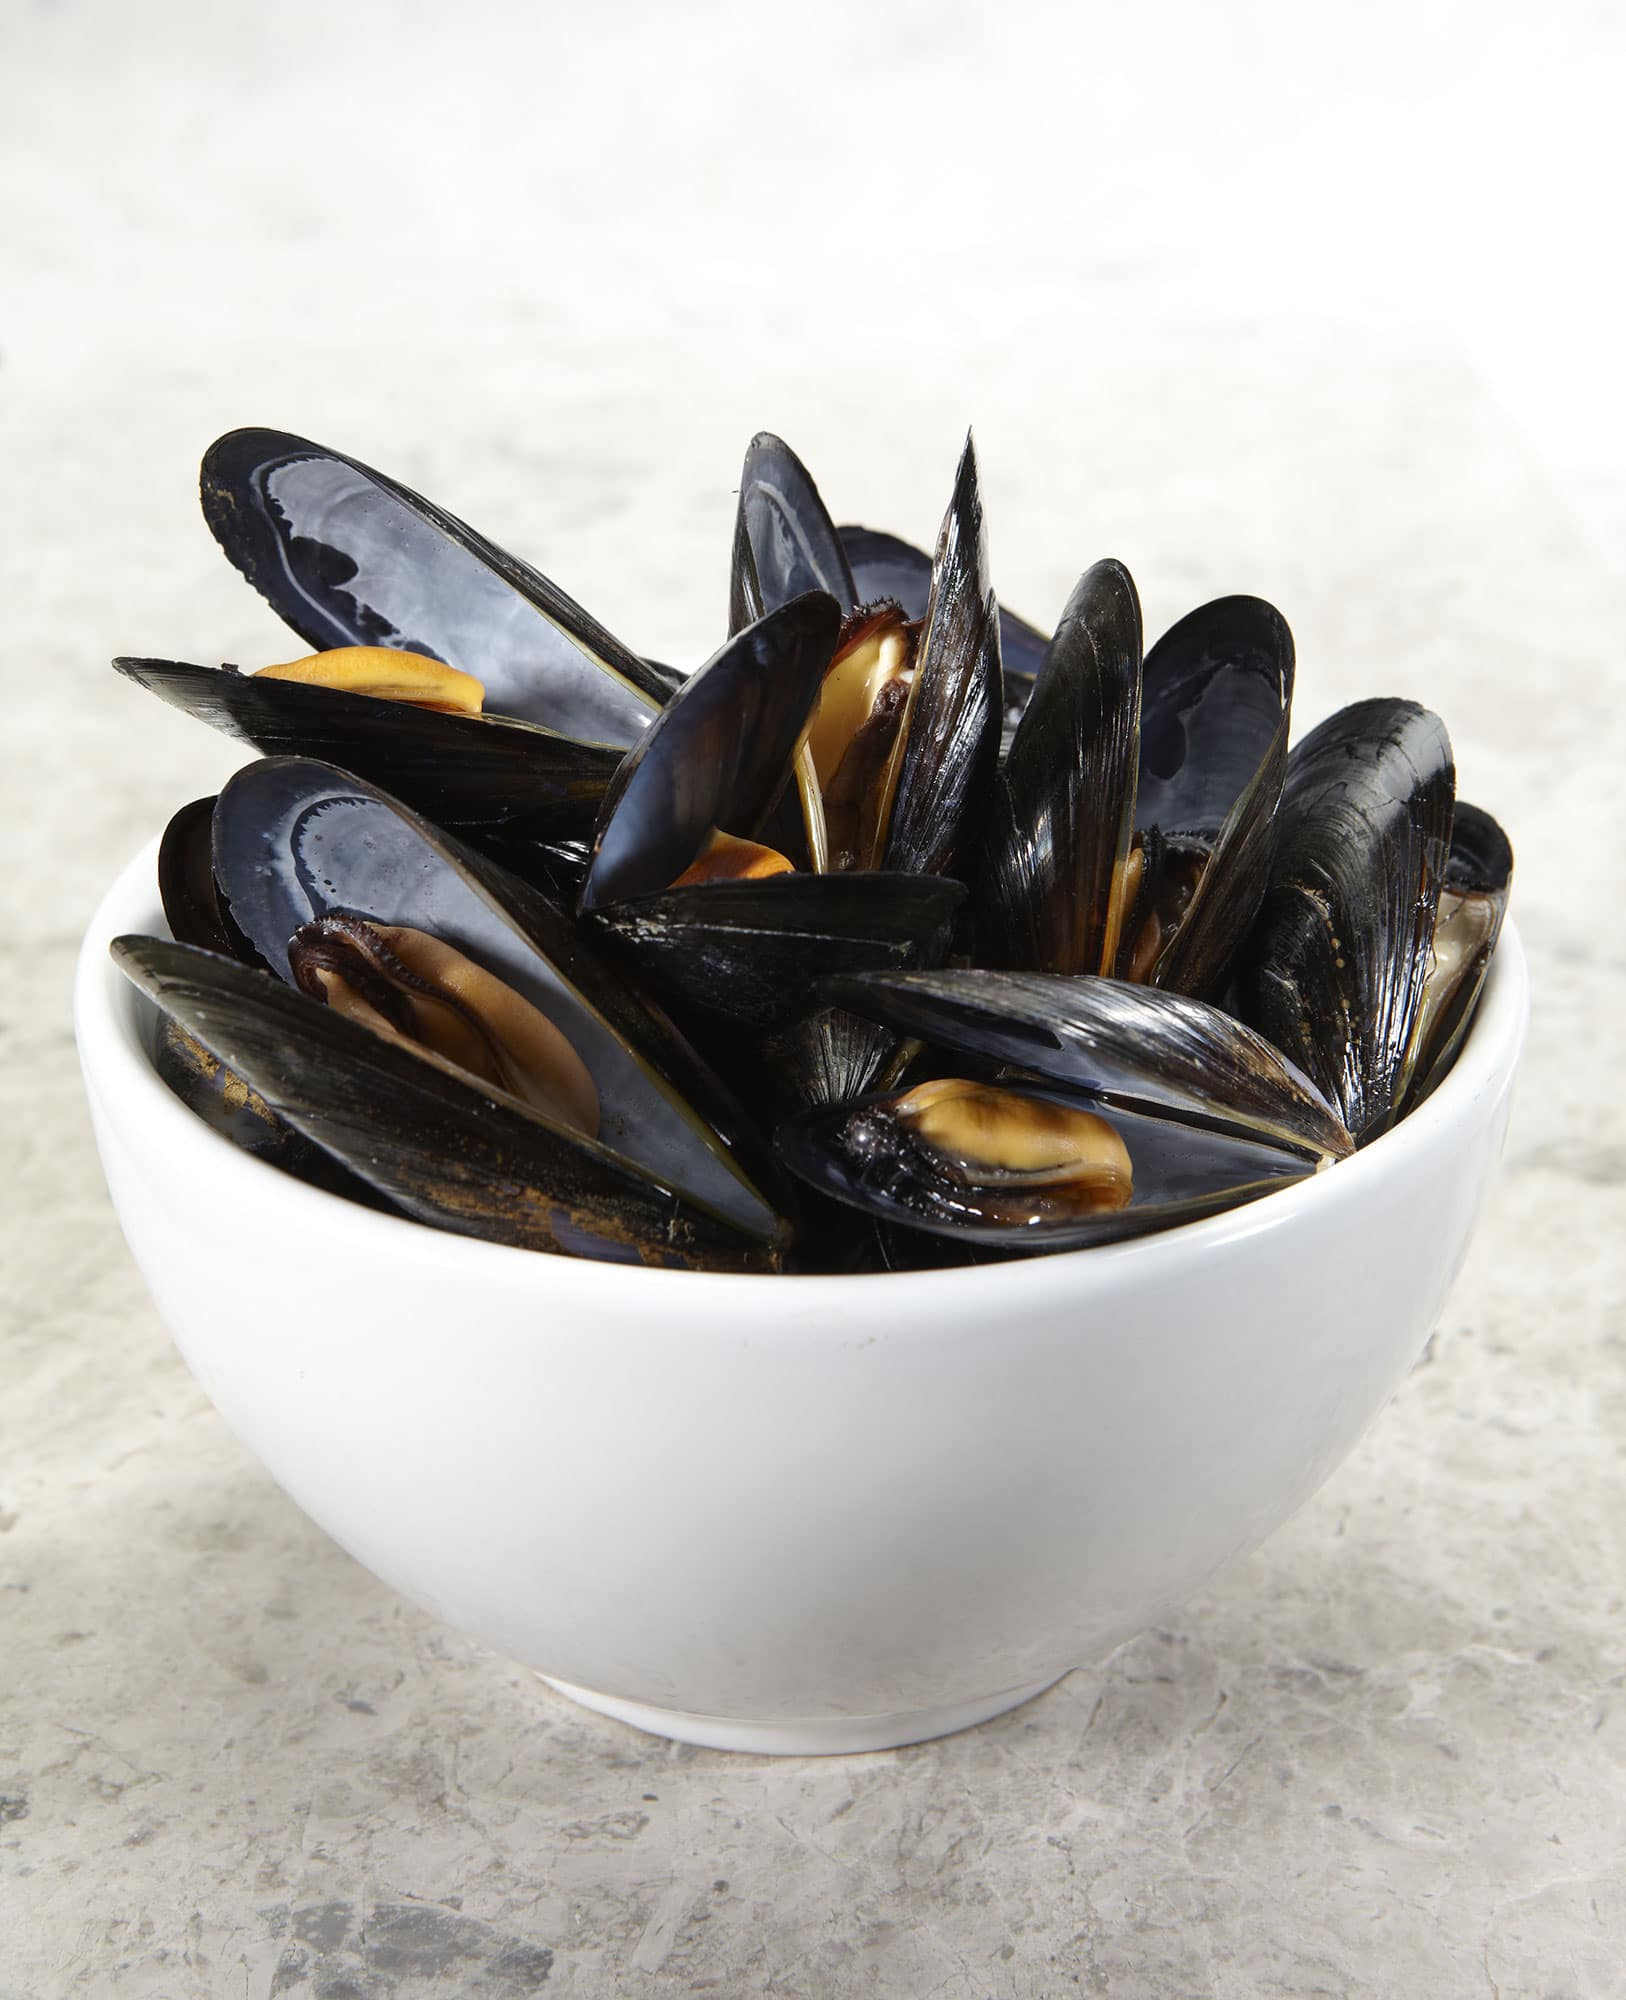 mussels-cockles-clams-welks-6